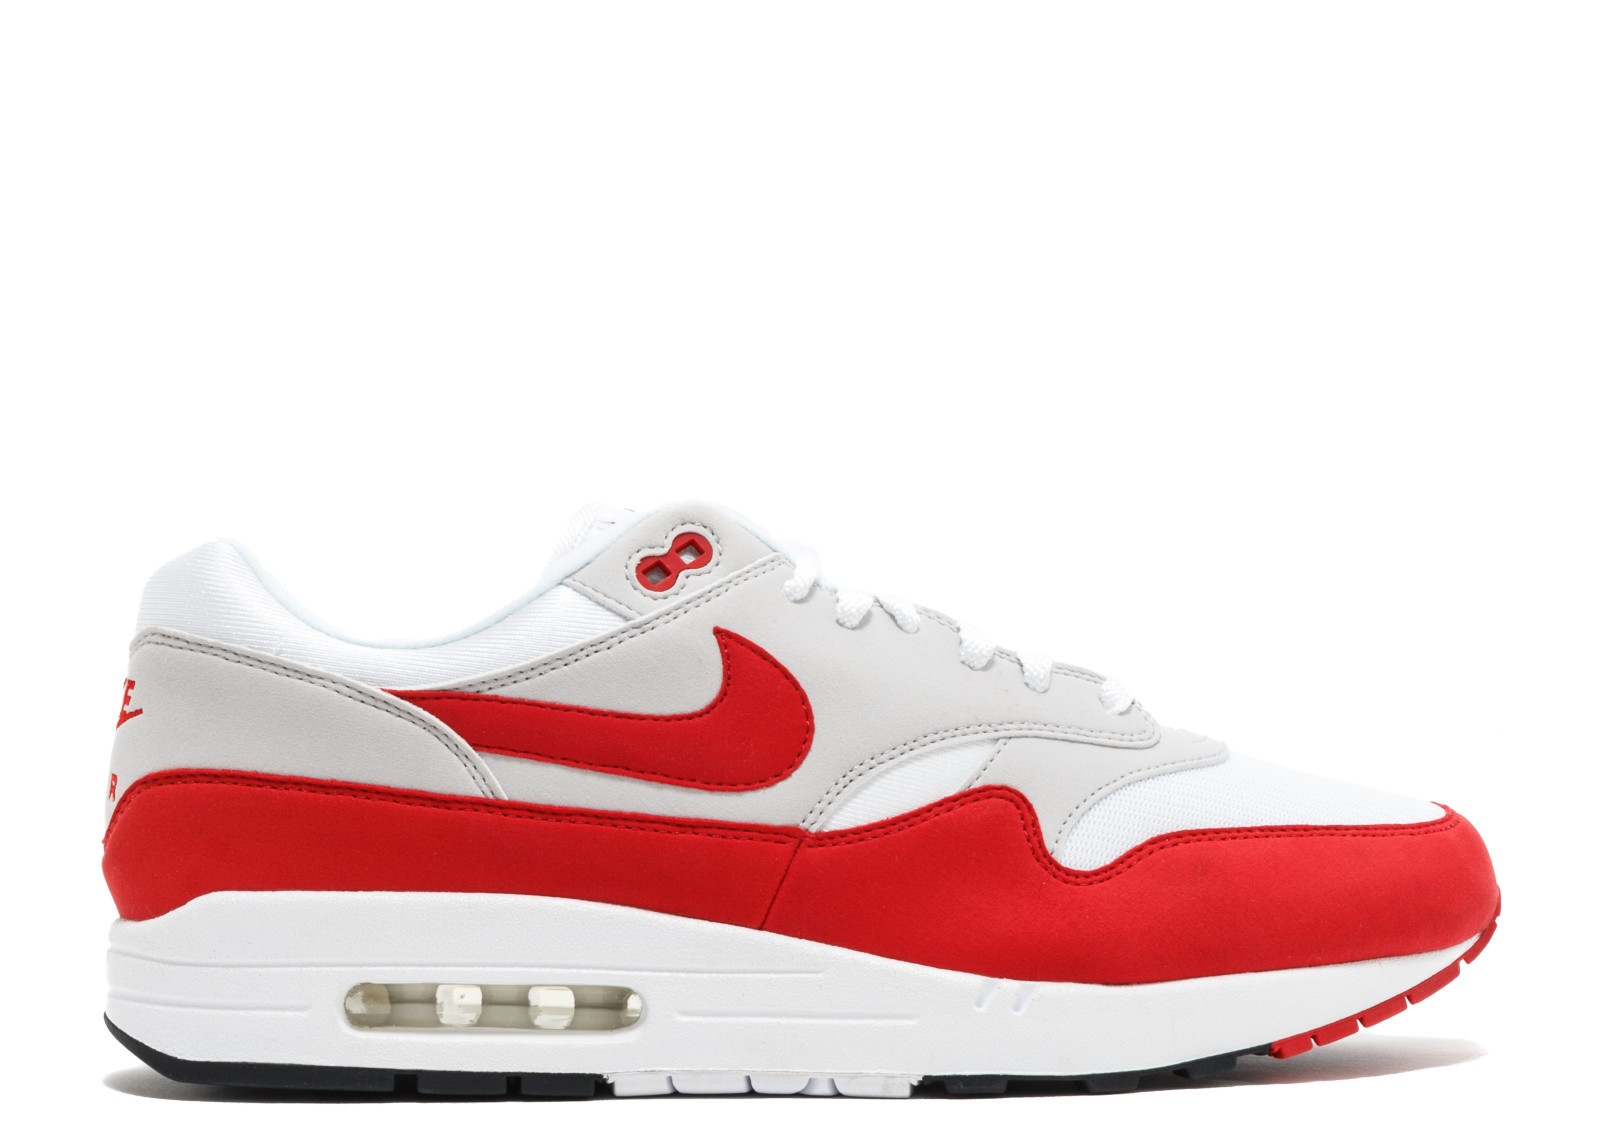 Nike Air Max 1 Anniversary Blanche/Rouge 908375-100